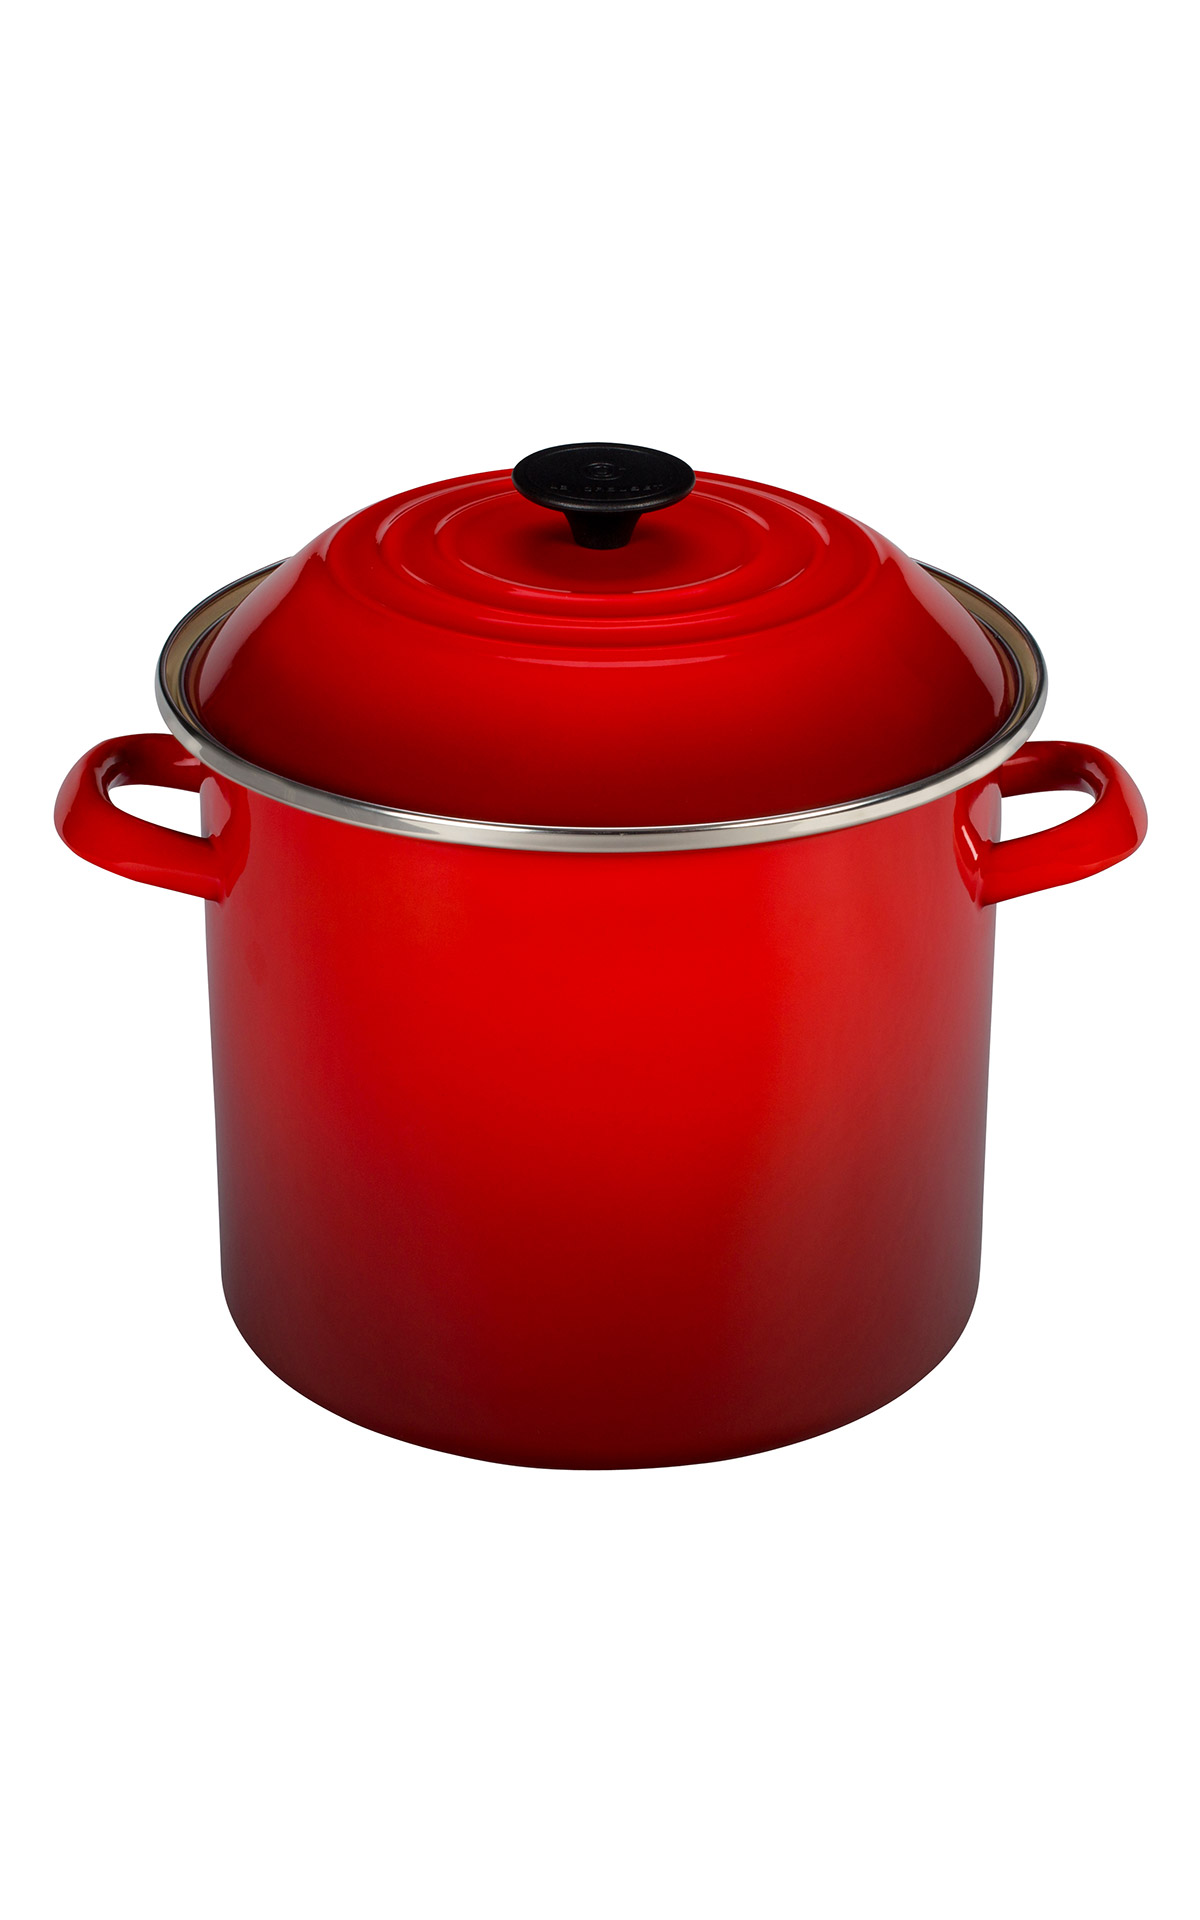 Big red pot Le Creuset